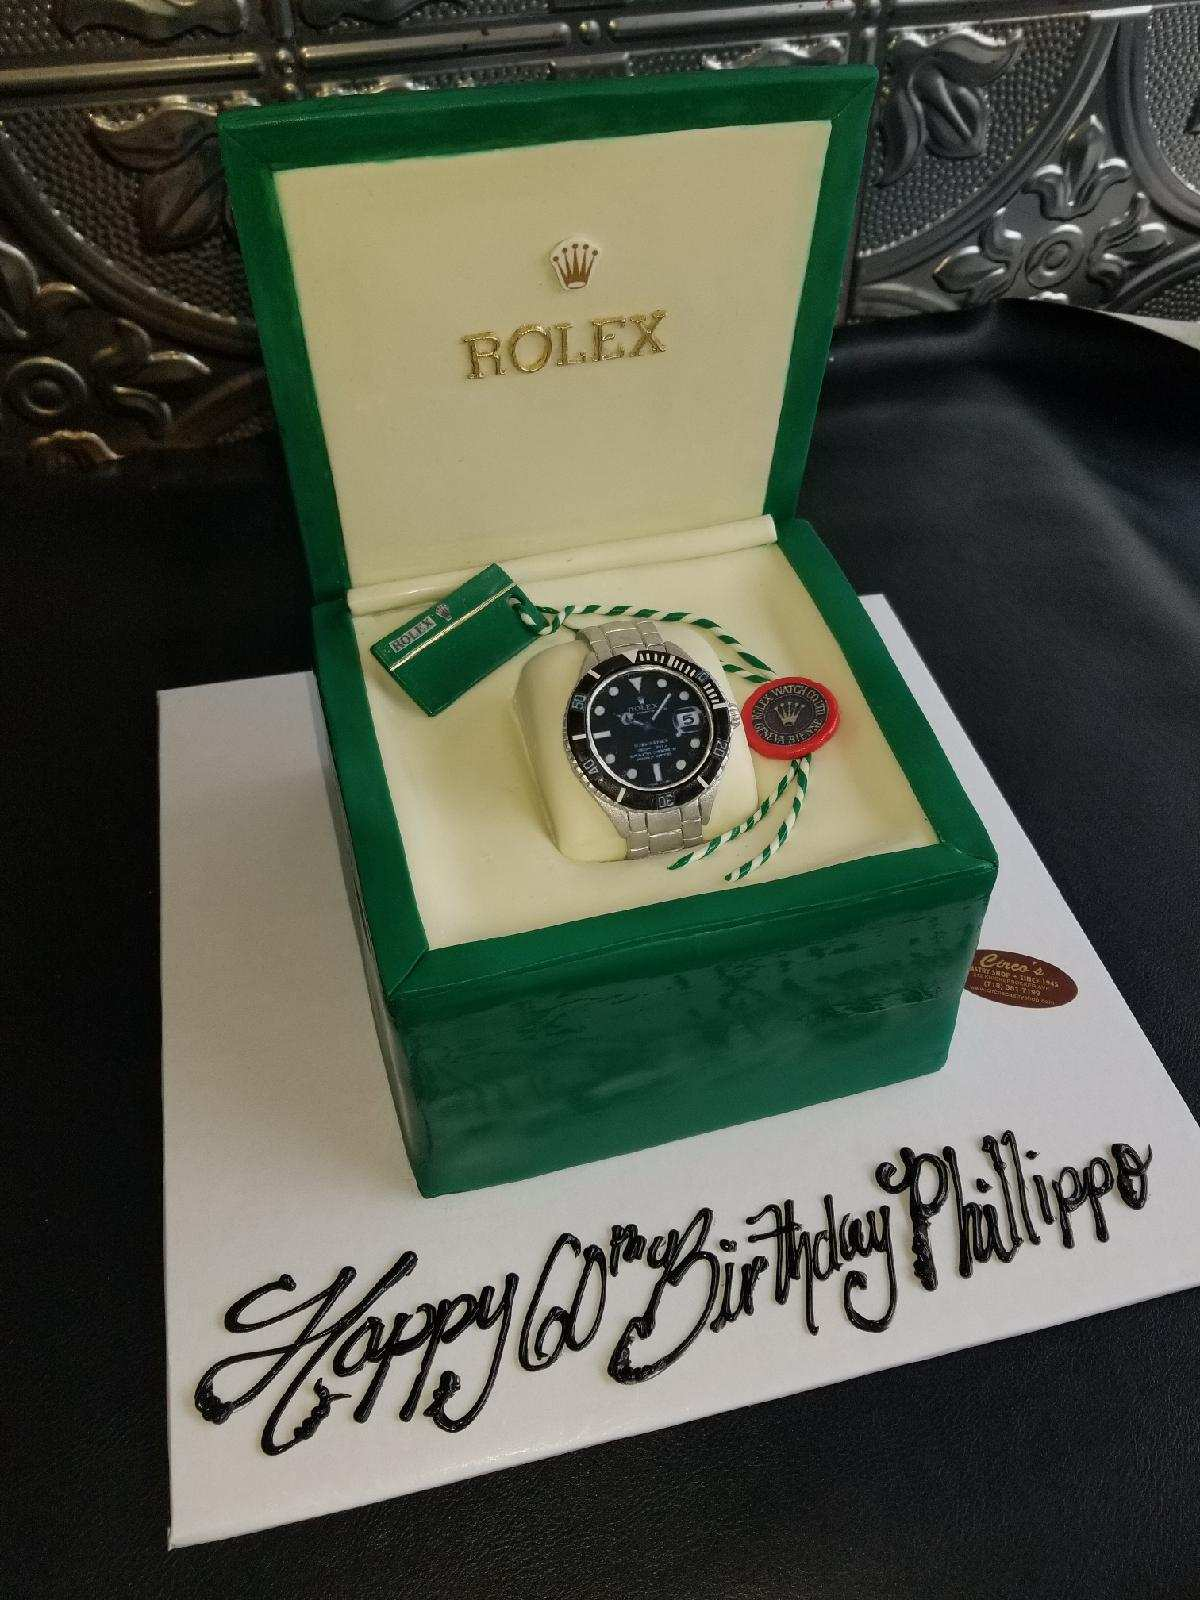 Marvelous Rolex Watch Cake Cs0290 Circos Pastry Shop Personalised Birthday Cards Arneslily Jamesorg